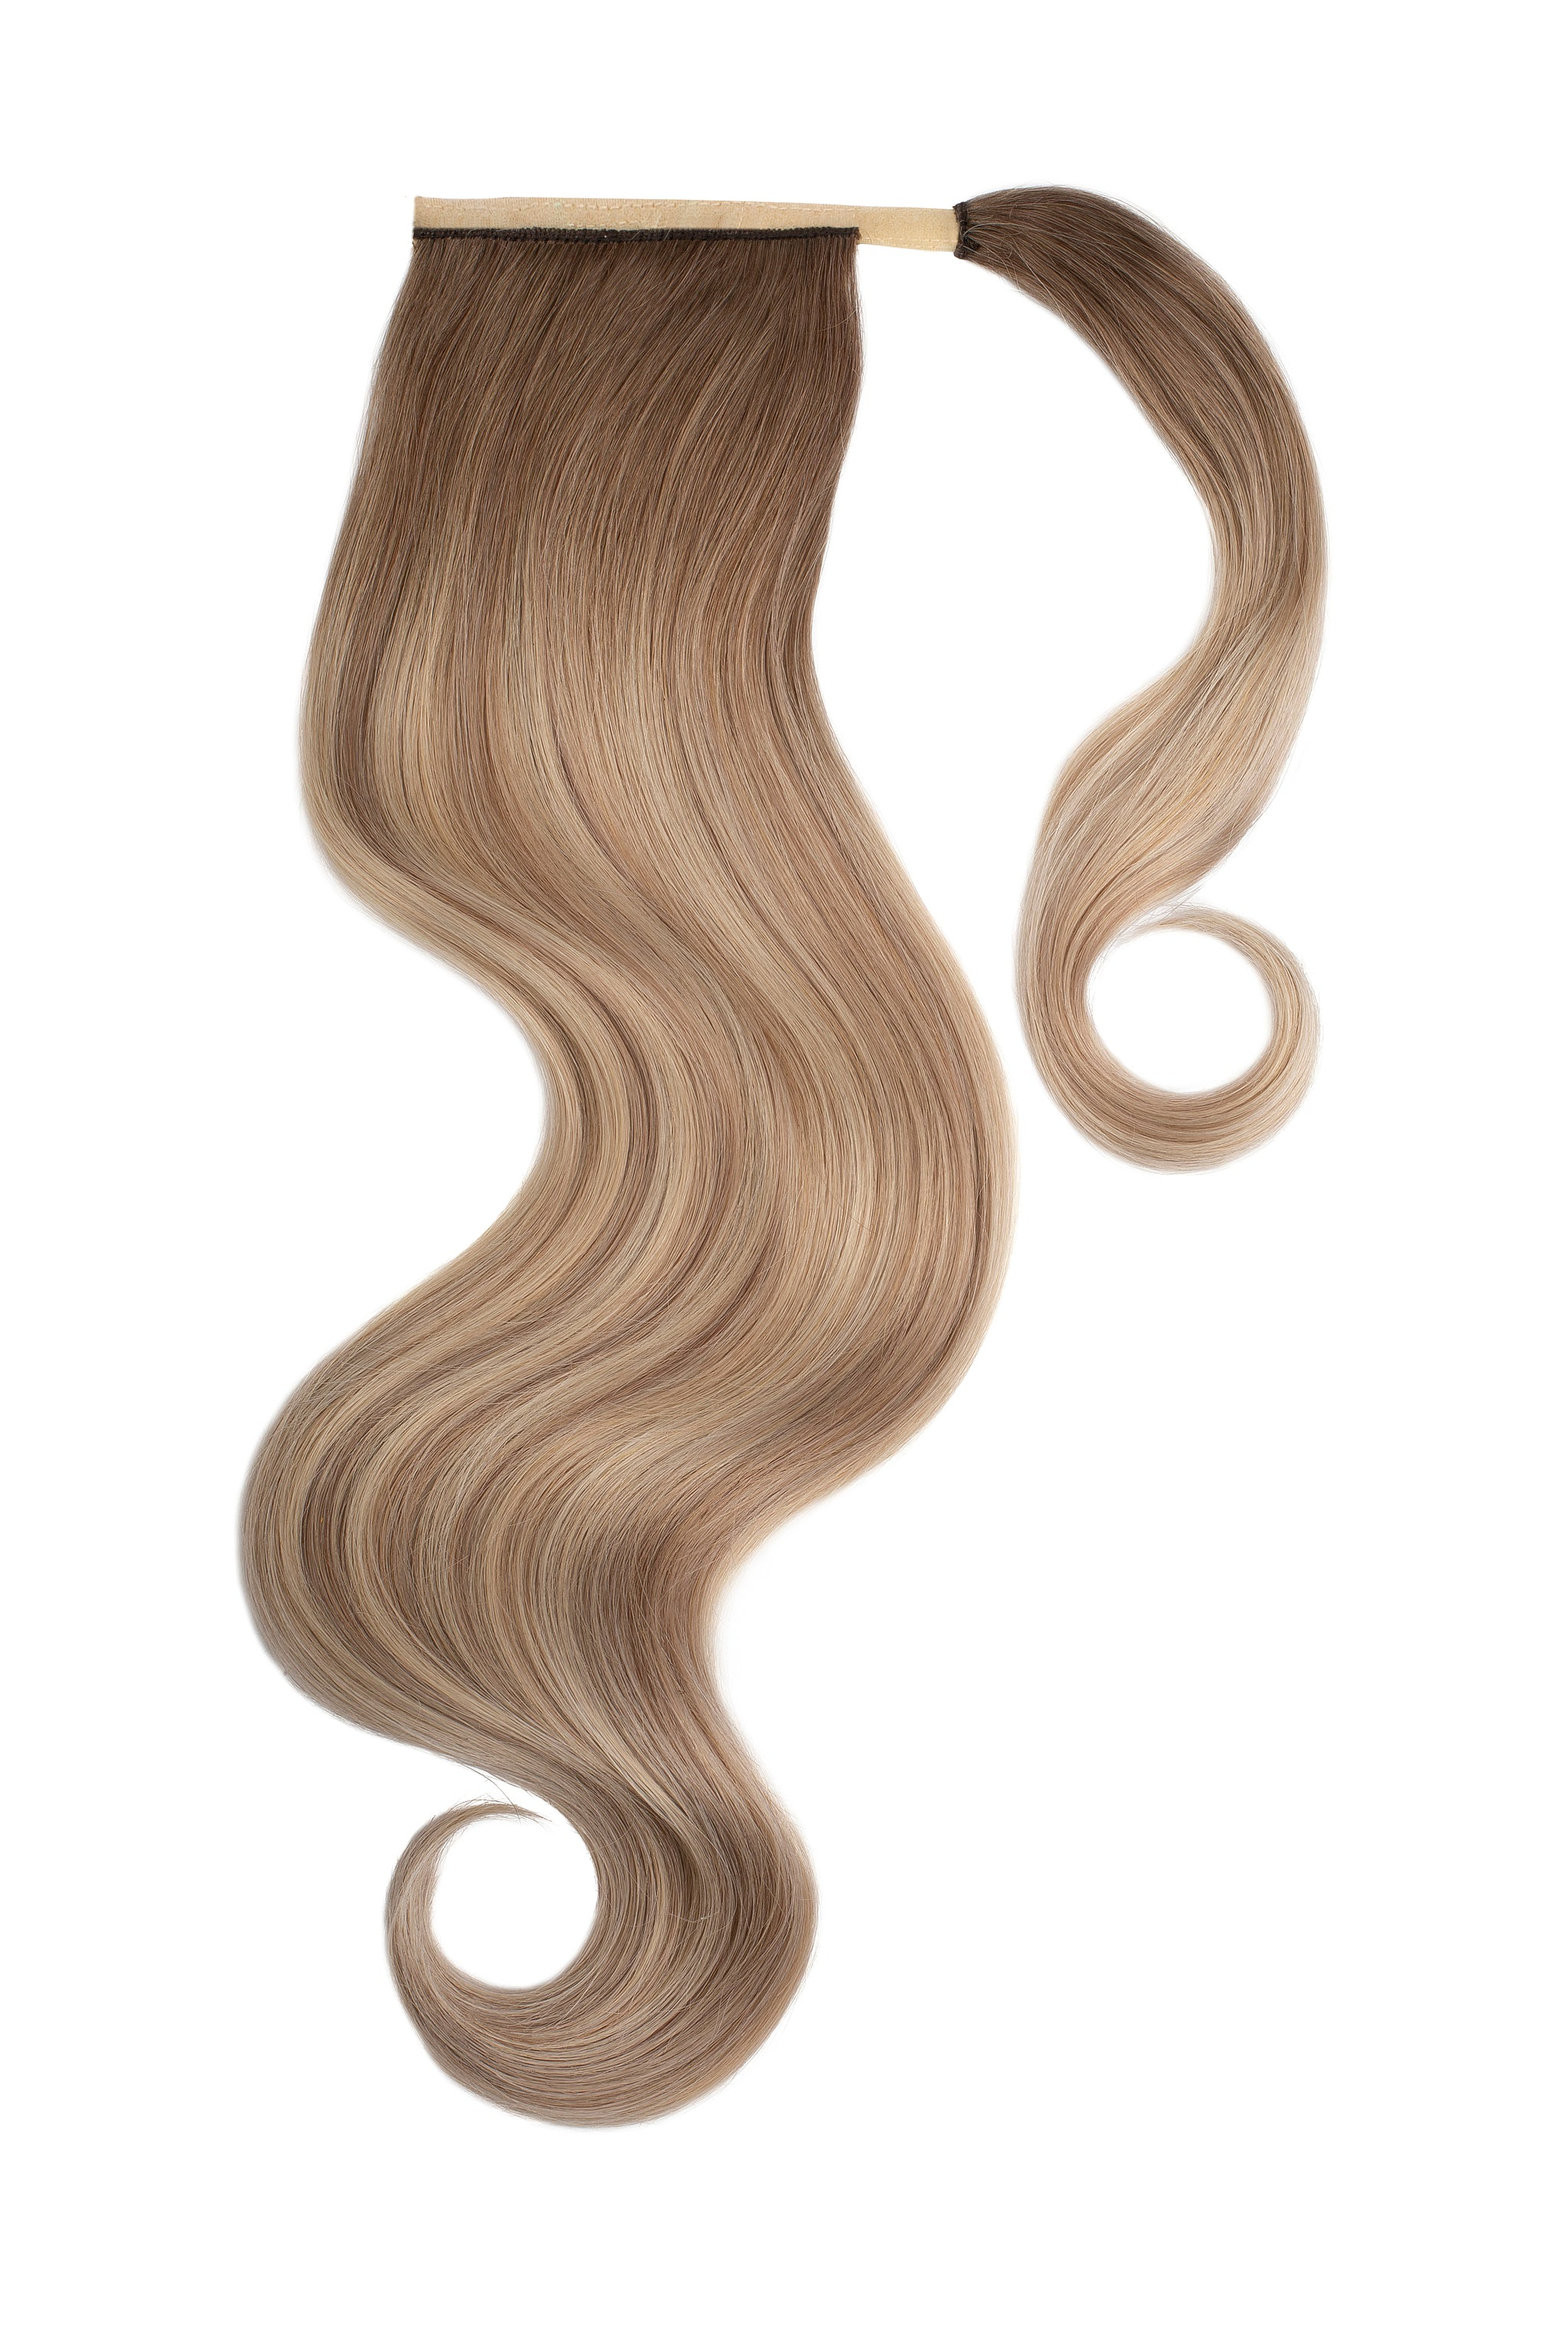 Cream Beige Balayage Clip In Ponytail Hair Extensions